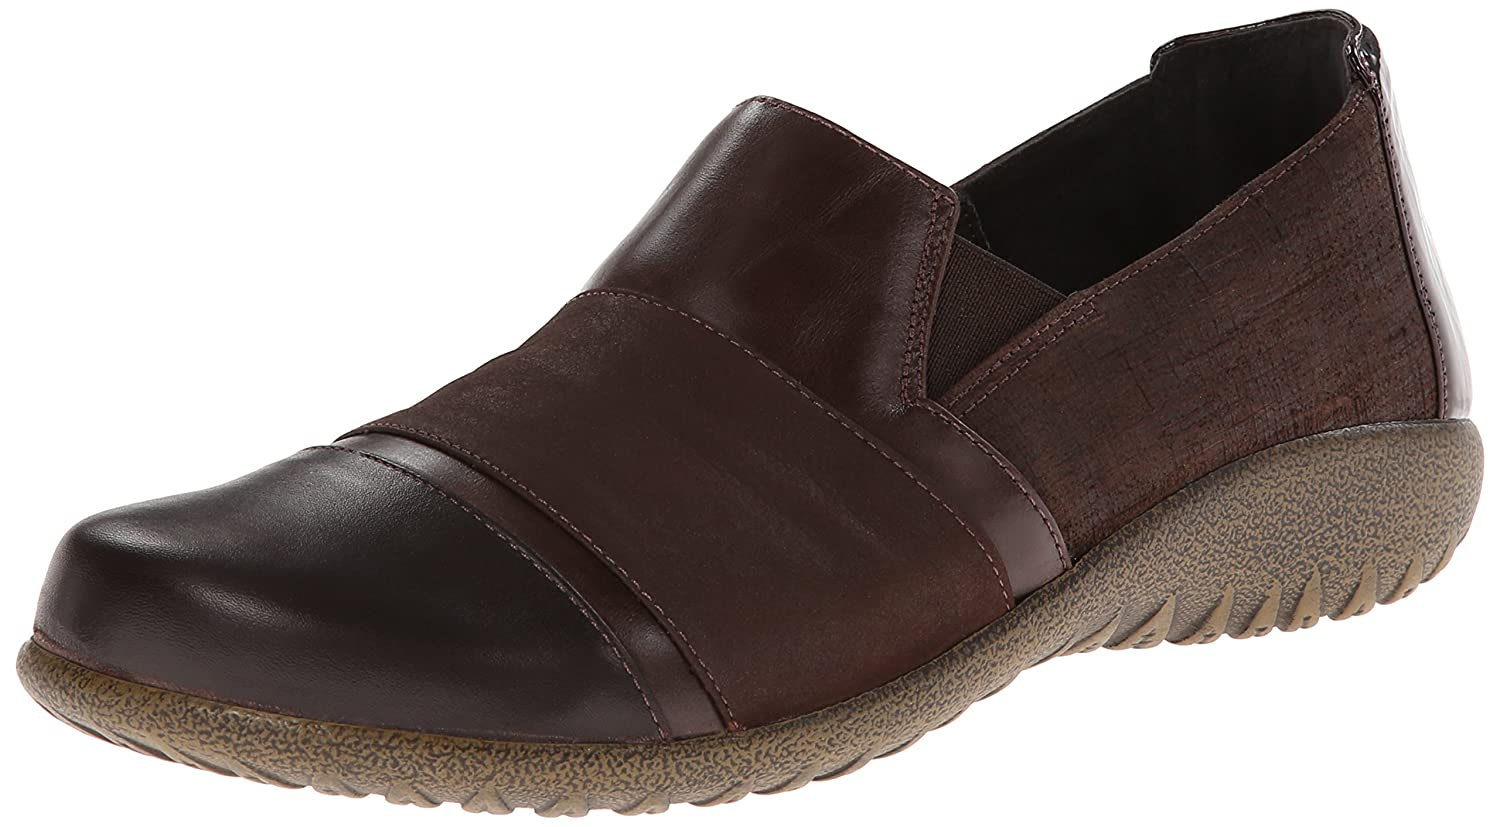 NAOT Women's Miro Flat B00IFPJTAE 36 EU/5-5.5 M US|Mine Brown Leather/Brown Shimmer Nubuck/Wine Patent Leather